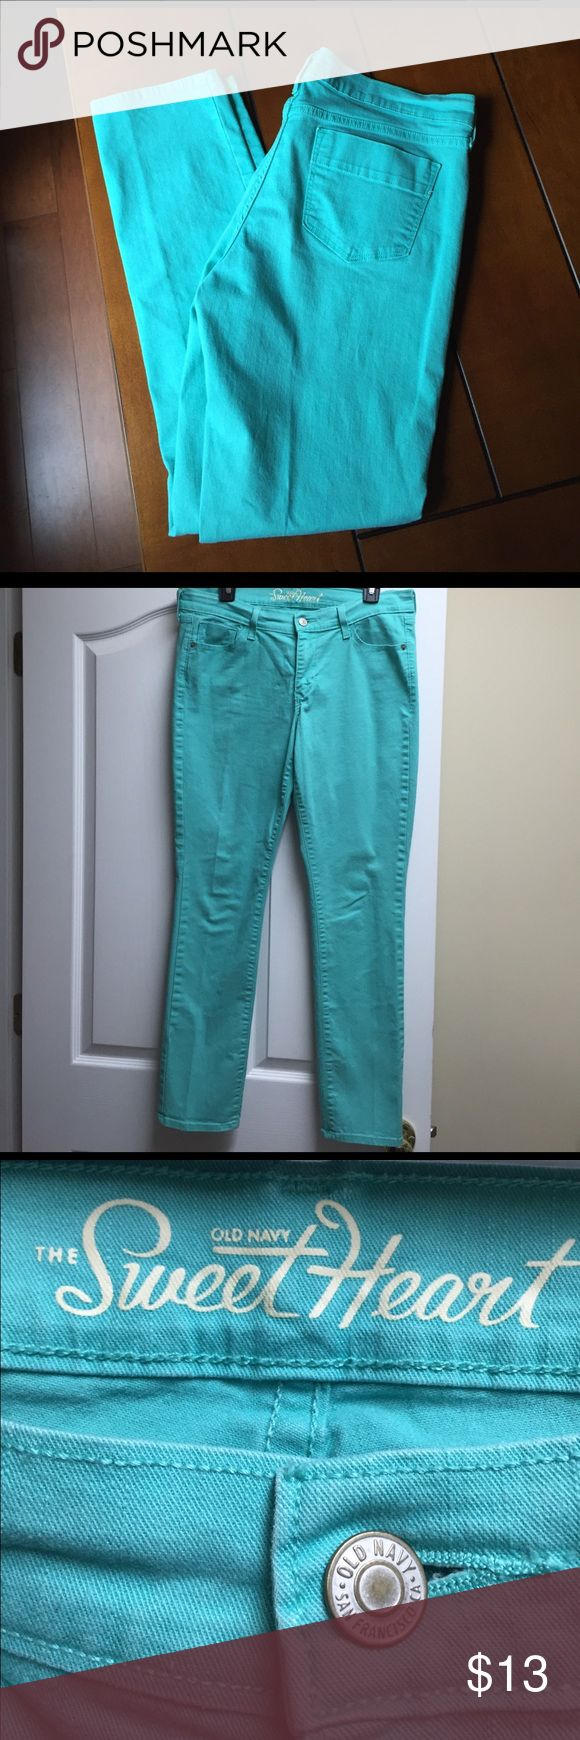 Old Navy Sweetheart colored jeans Old navy sweetheart jeans size 10.  Color is more mint than the picture shows.  The picture with the size is a more accurate color. Old Navy Jeans